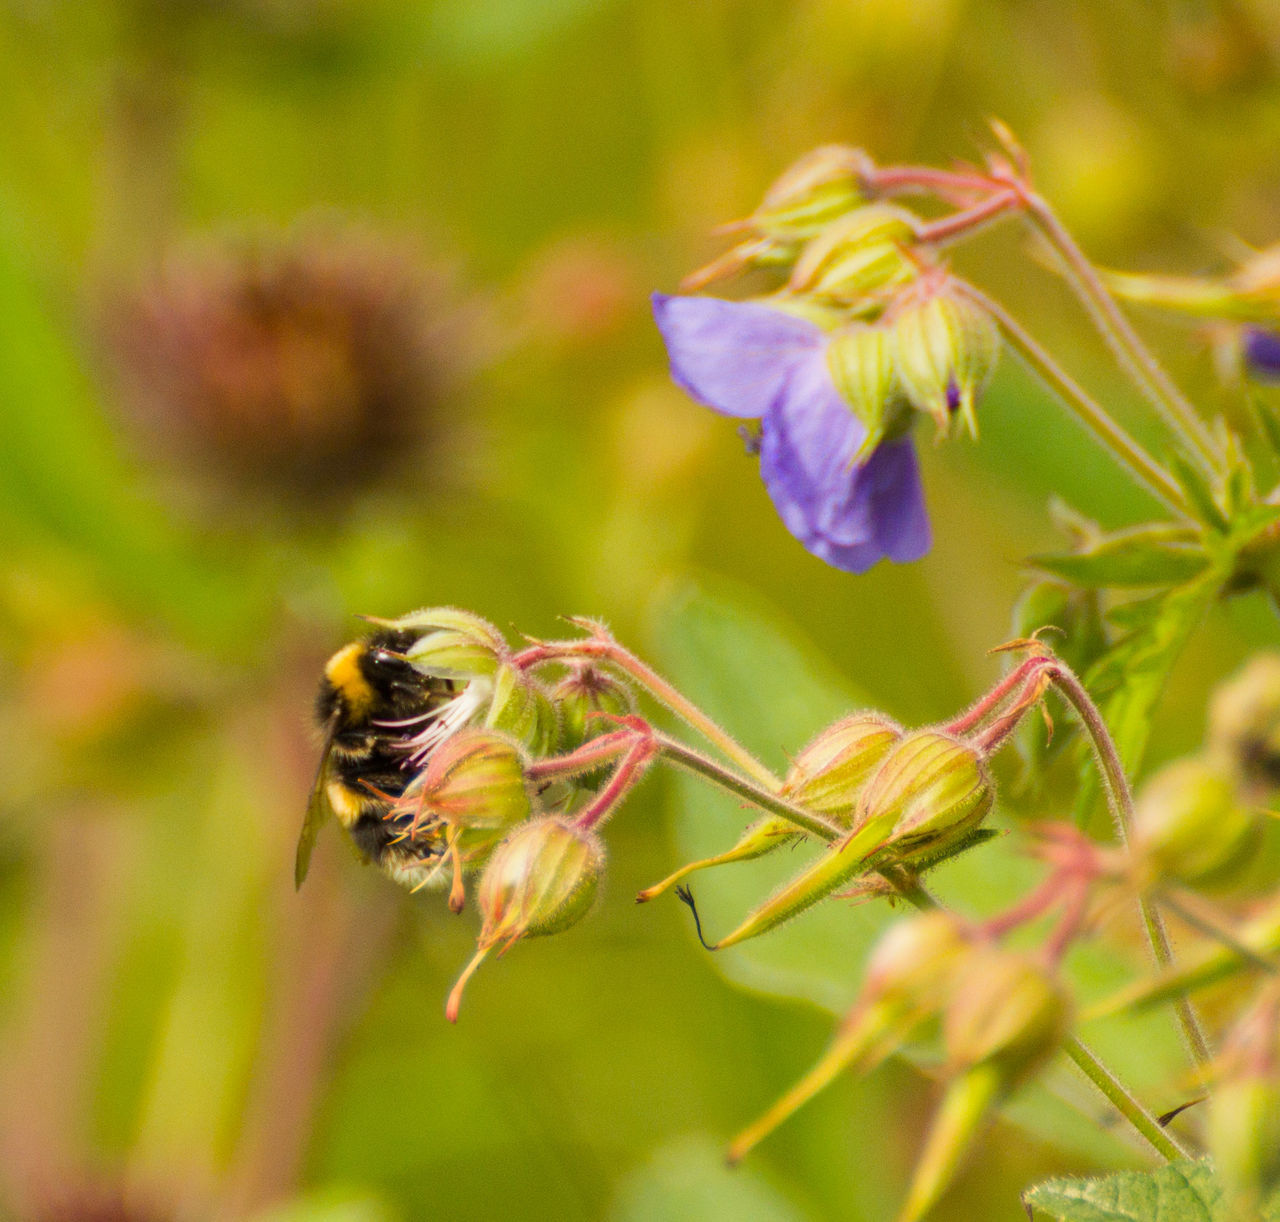 insect, animal themes, animals in the wild, flower, bee, nature, one animal, plant, growth, no people, focus on foreground, outdoors, fragility, day, animal wildlife, close-up, pollination, beauty in nature, buzzing, freshness, flower head